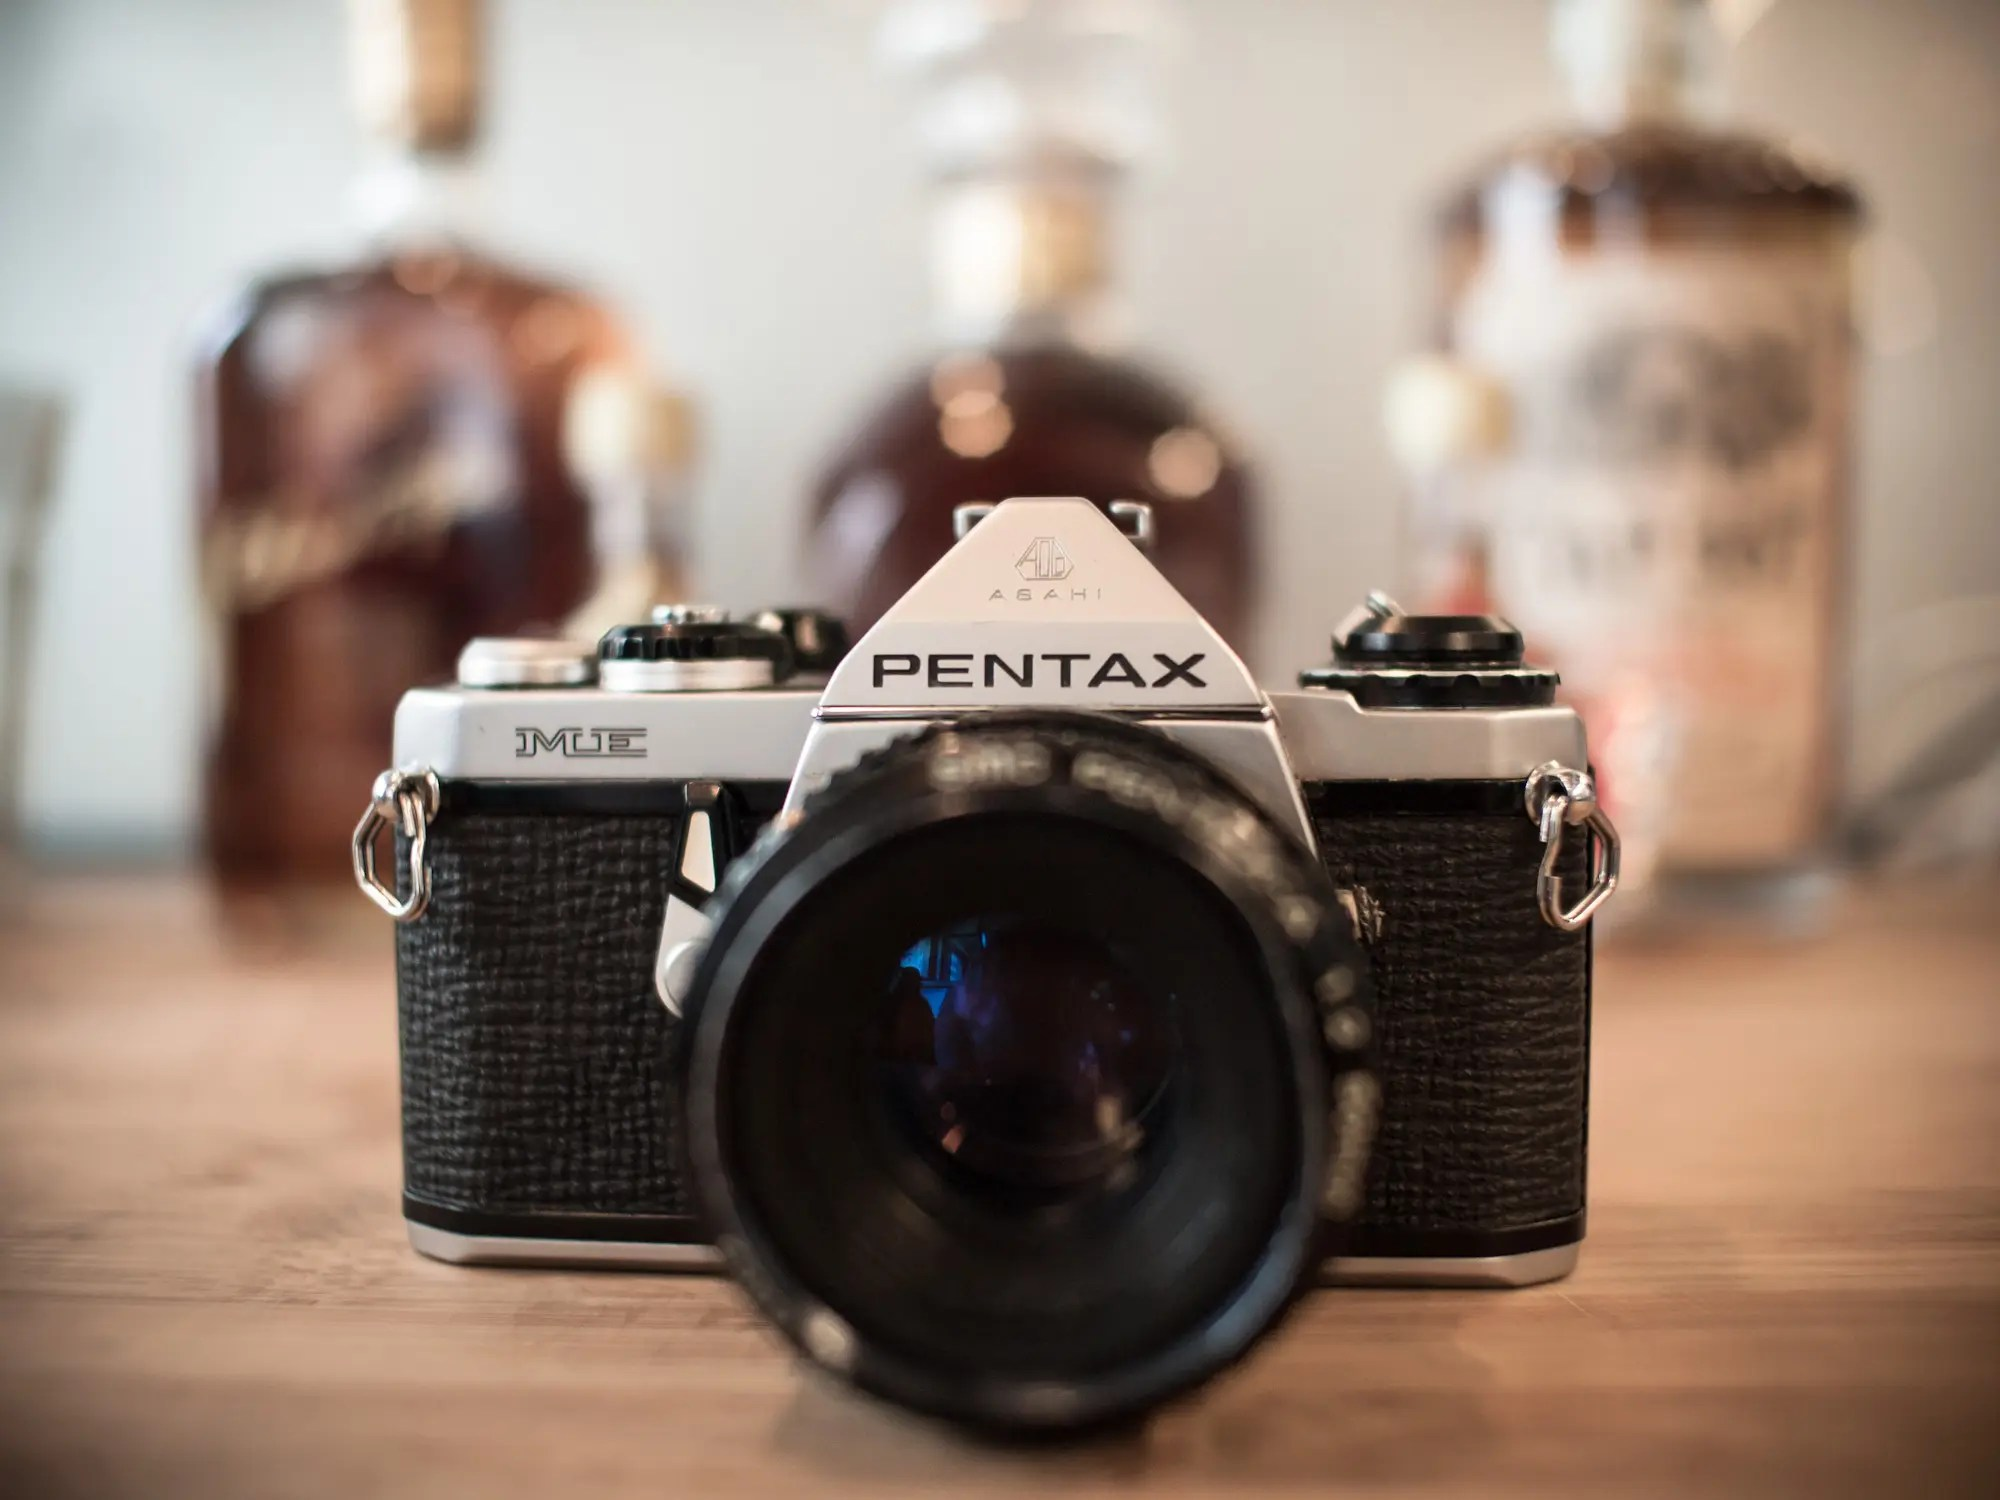 Film Camera Pentax 39s New Mx 1 Looks A Lot Like Its Old Me Slr The